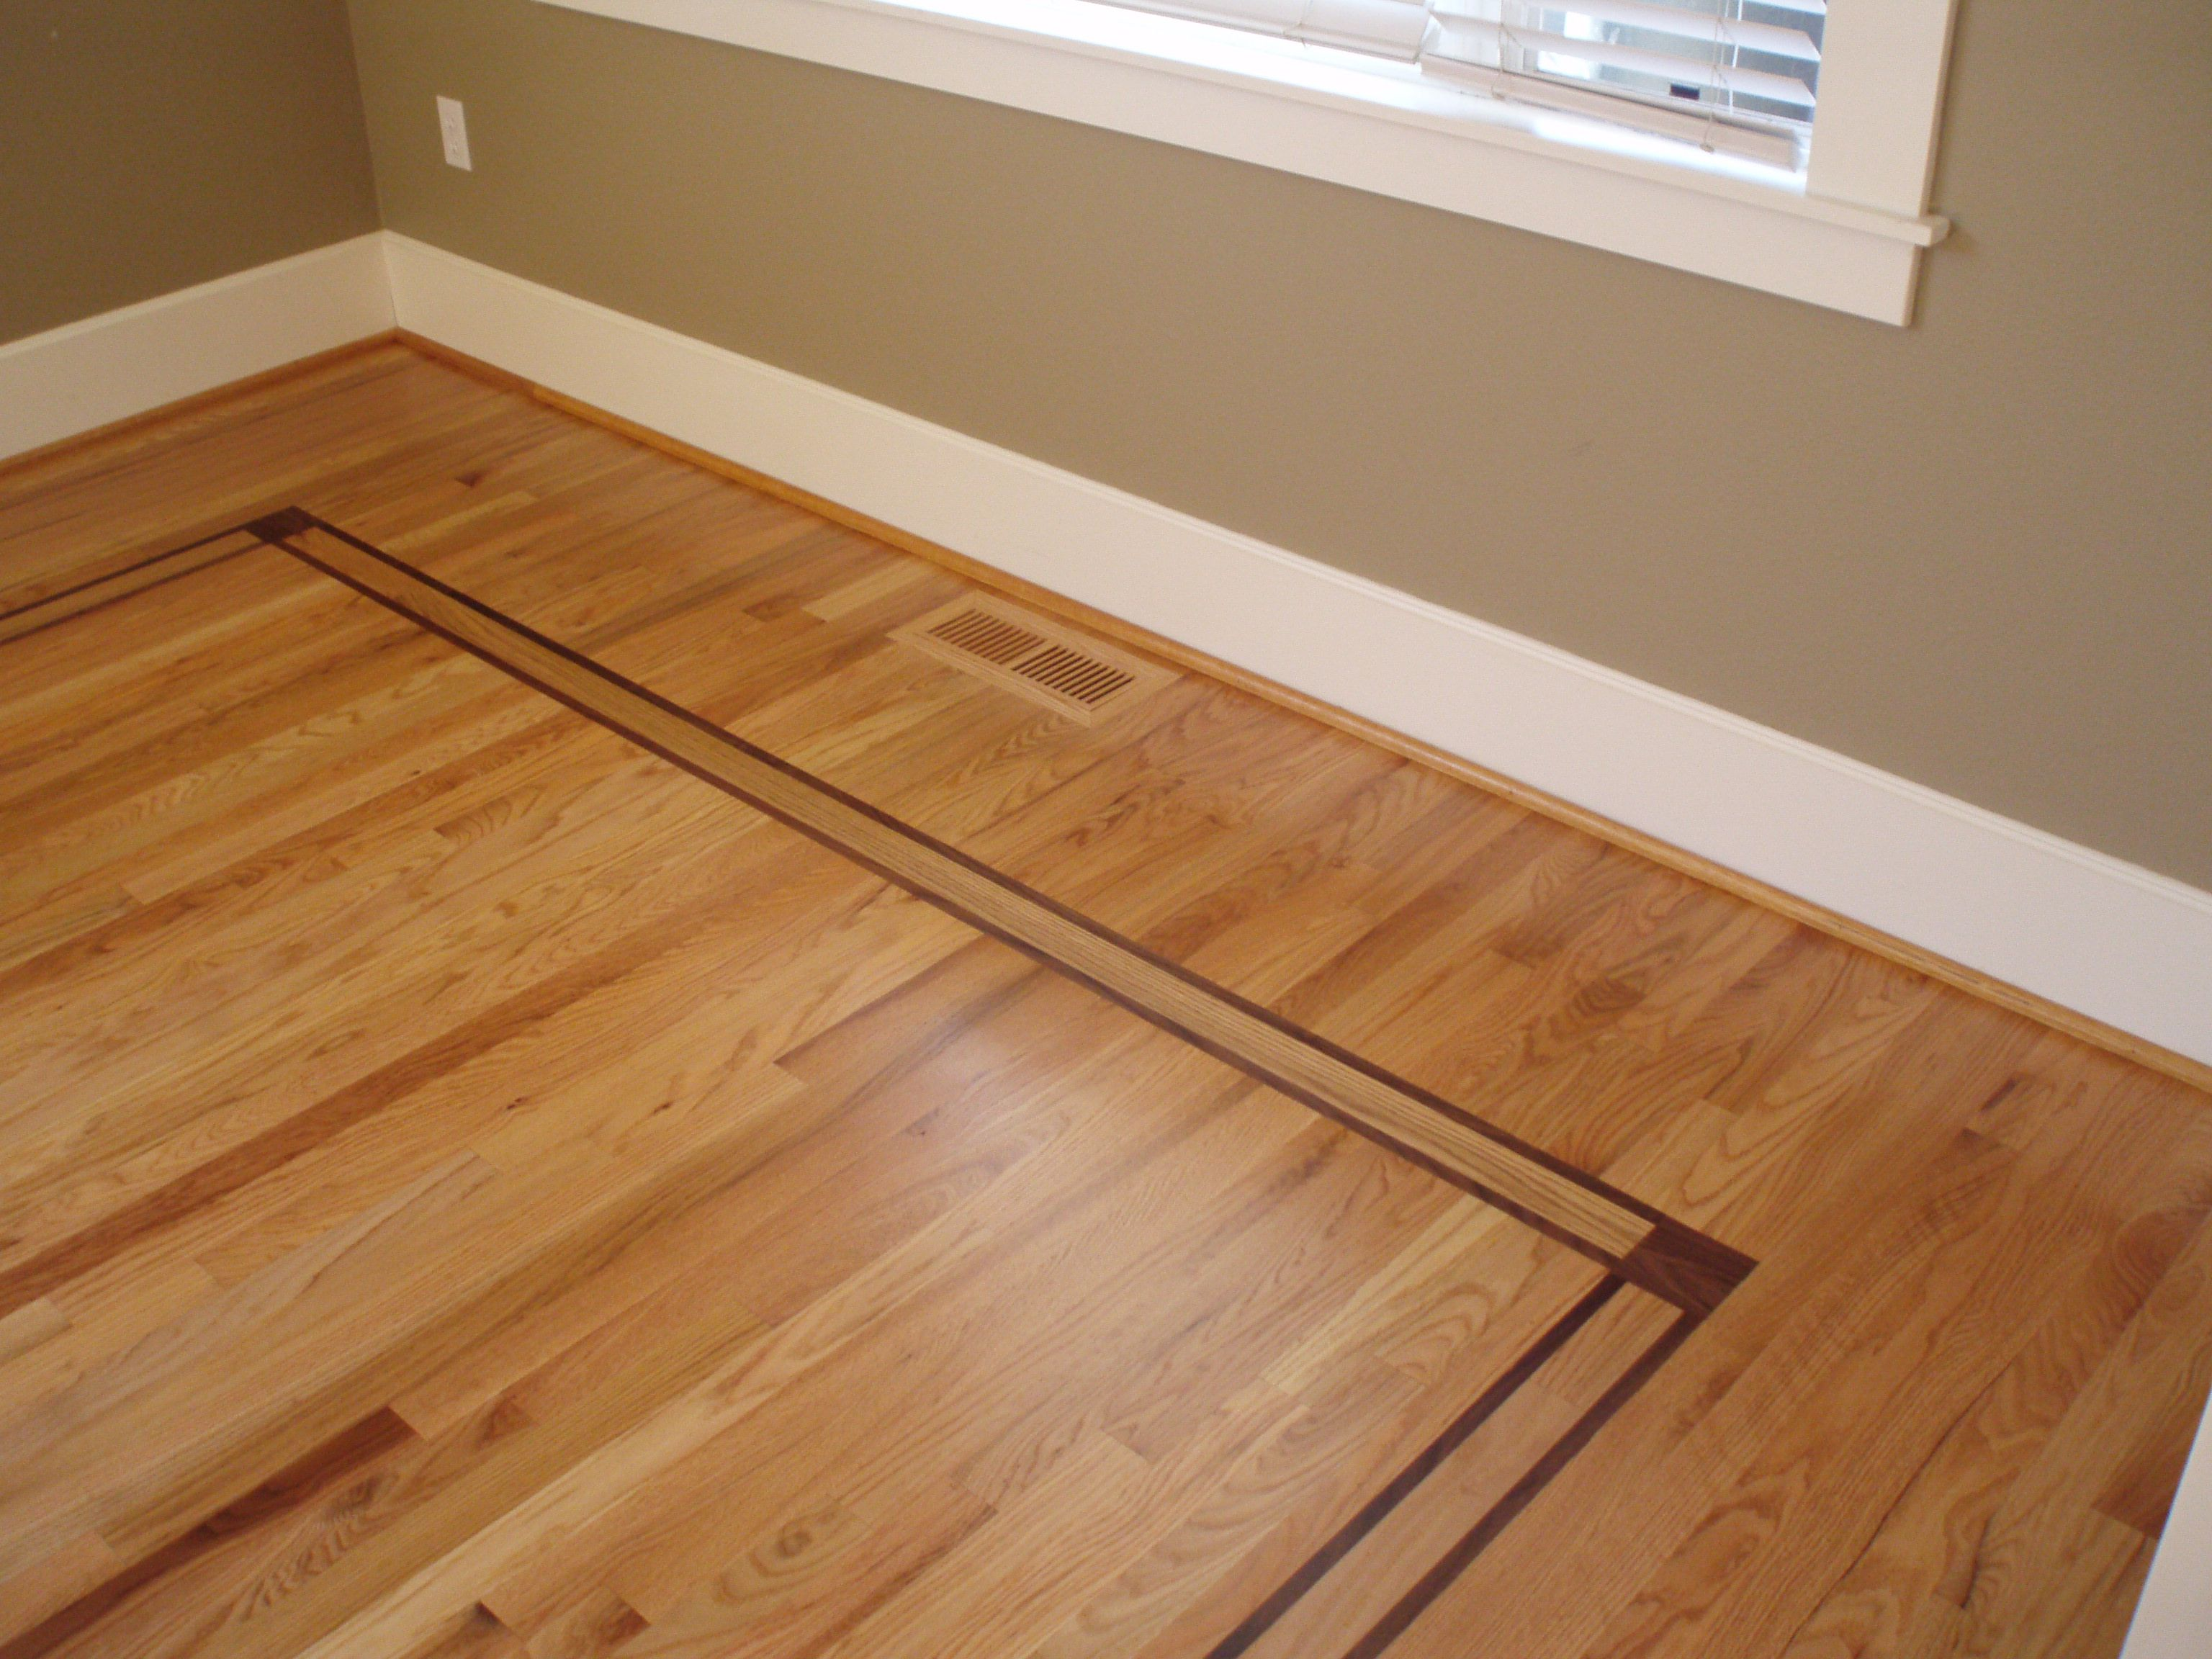 Pin By Bill Whitehead On Baseboards Hardwood Flooring Prices Red Oak Hardwood Floors Hardwood Floors